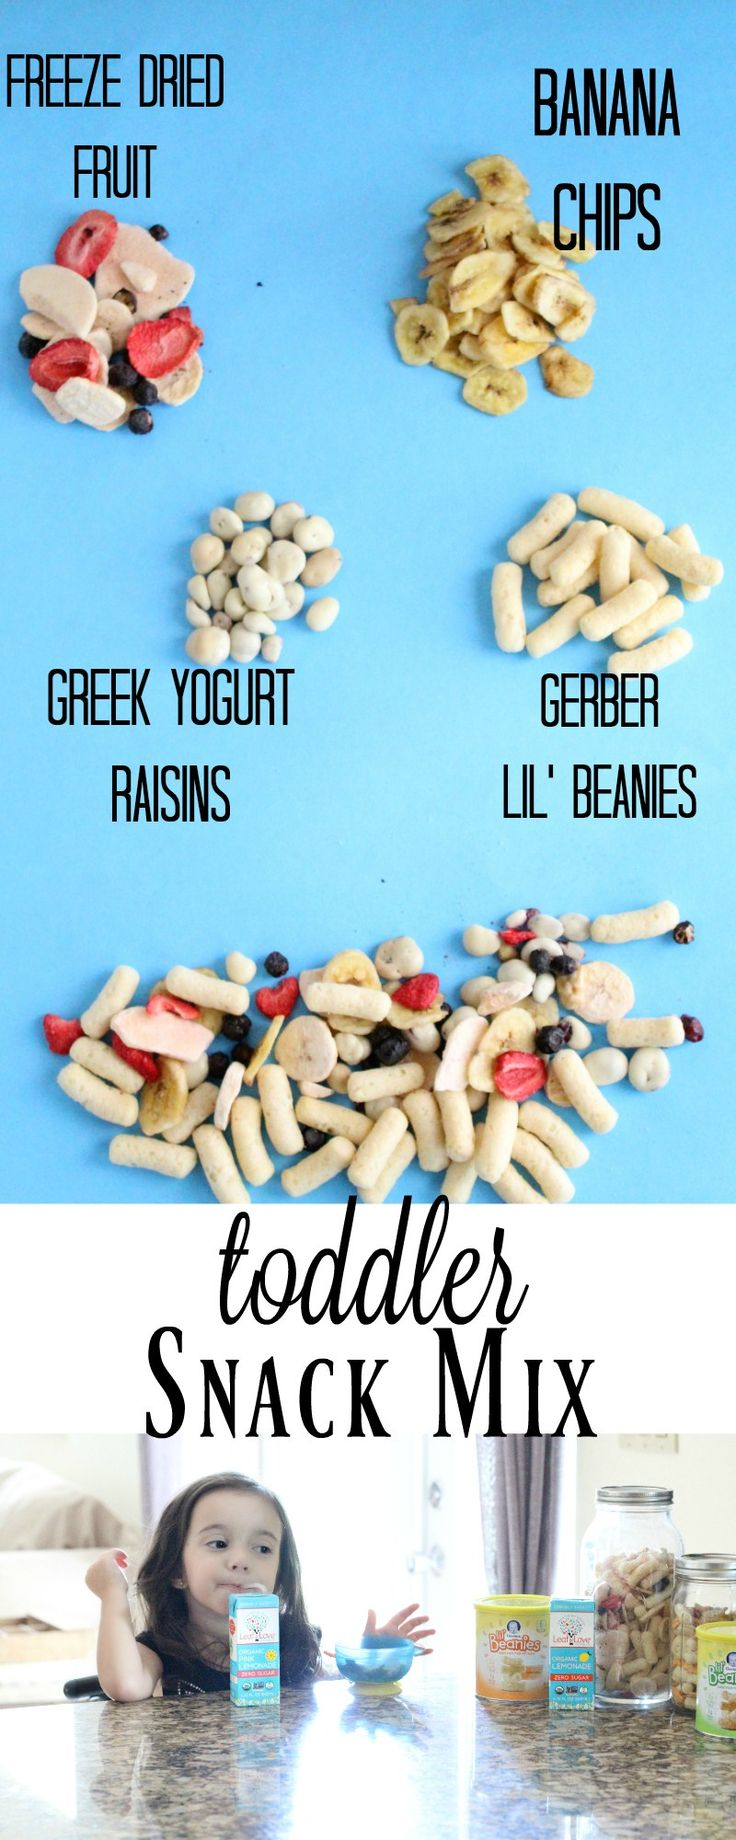 Easy Toddler Snack Mix. Healthy and Nutritious snacks that my kids love! Save $0.75 - Gerber Lil Beanies >> https://ooh.li/1f45437